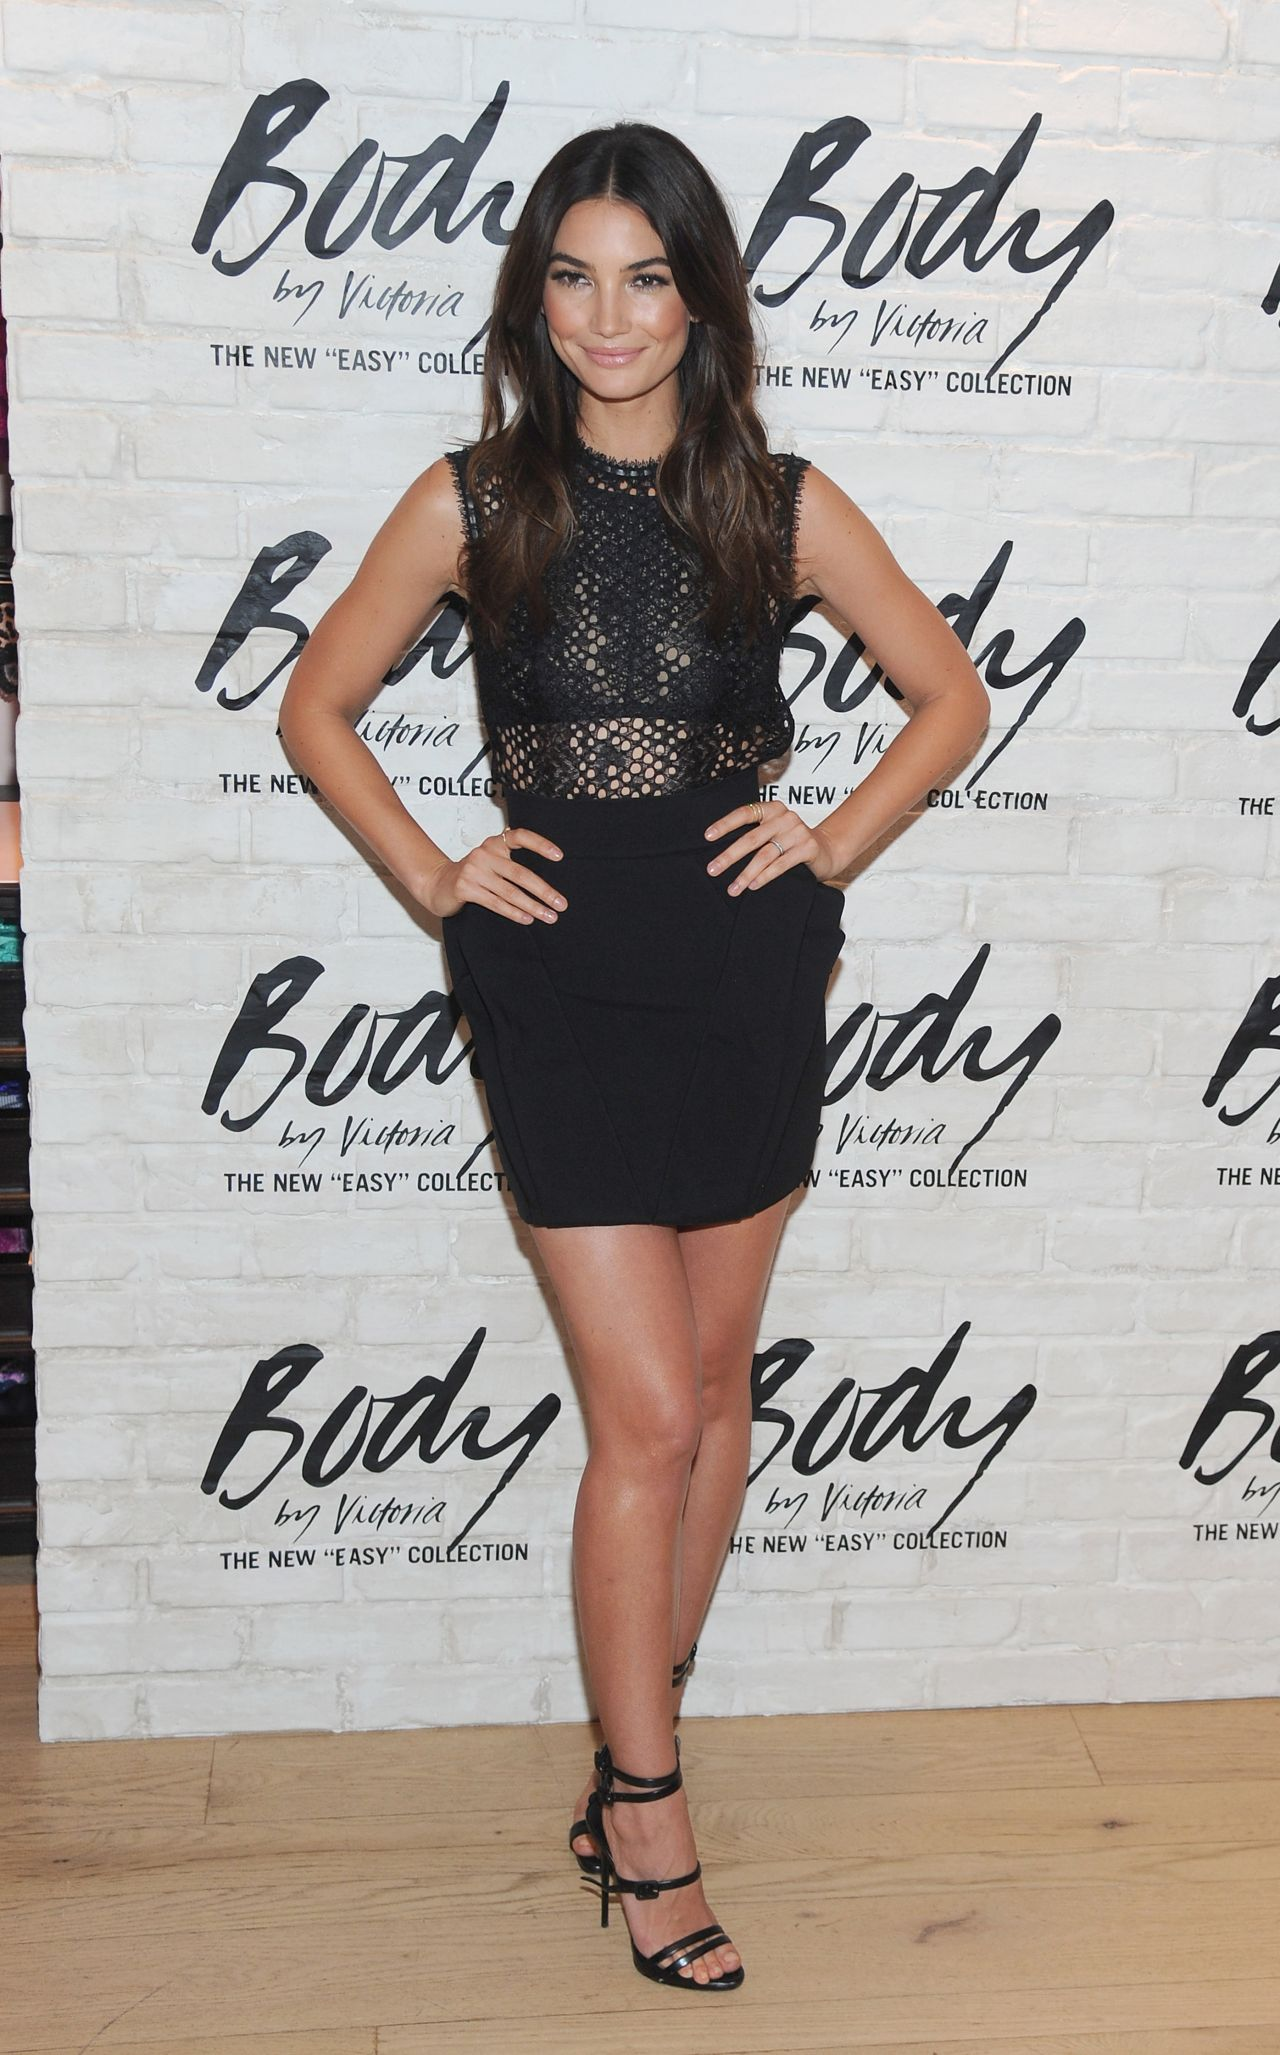 Lily Aldridge Launch Of The Body By Victoria The Easy